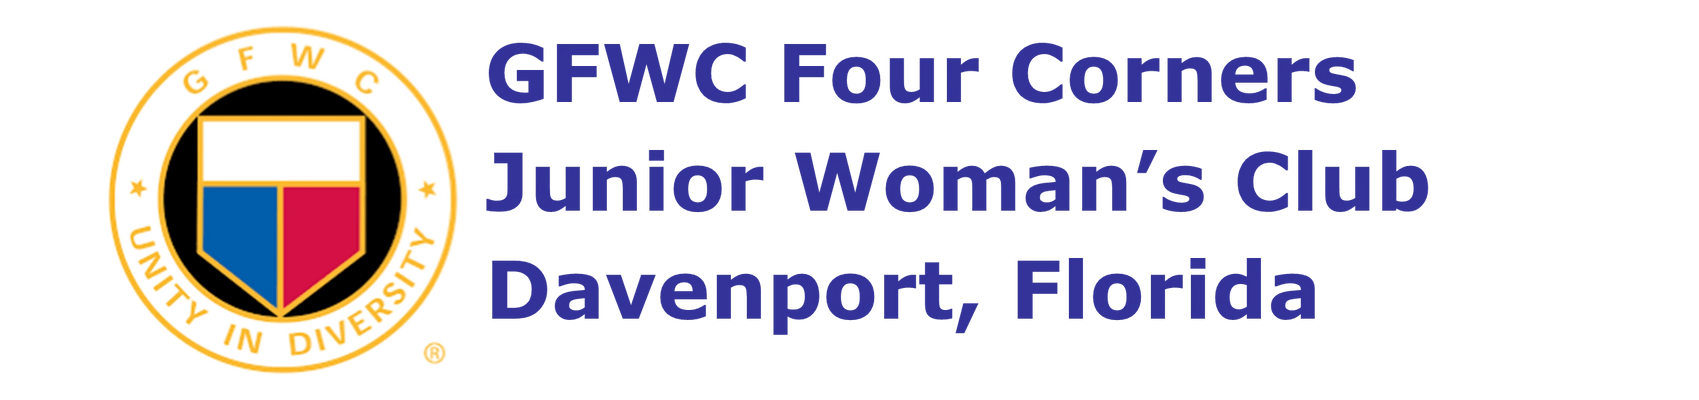 GFWC Four Corners  Junior Woman's Club  Davenport, Florida